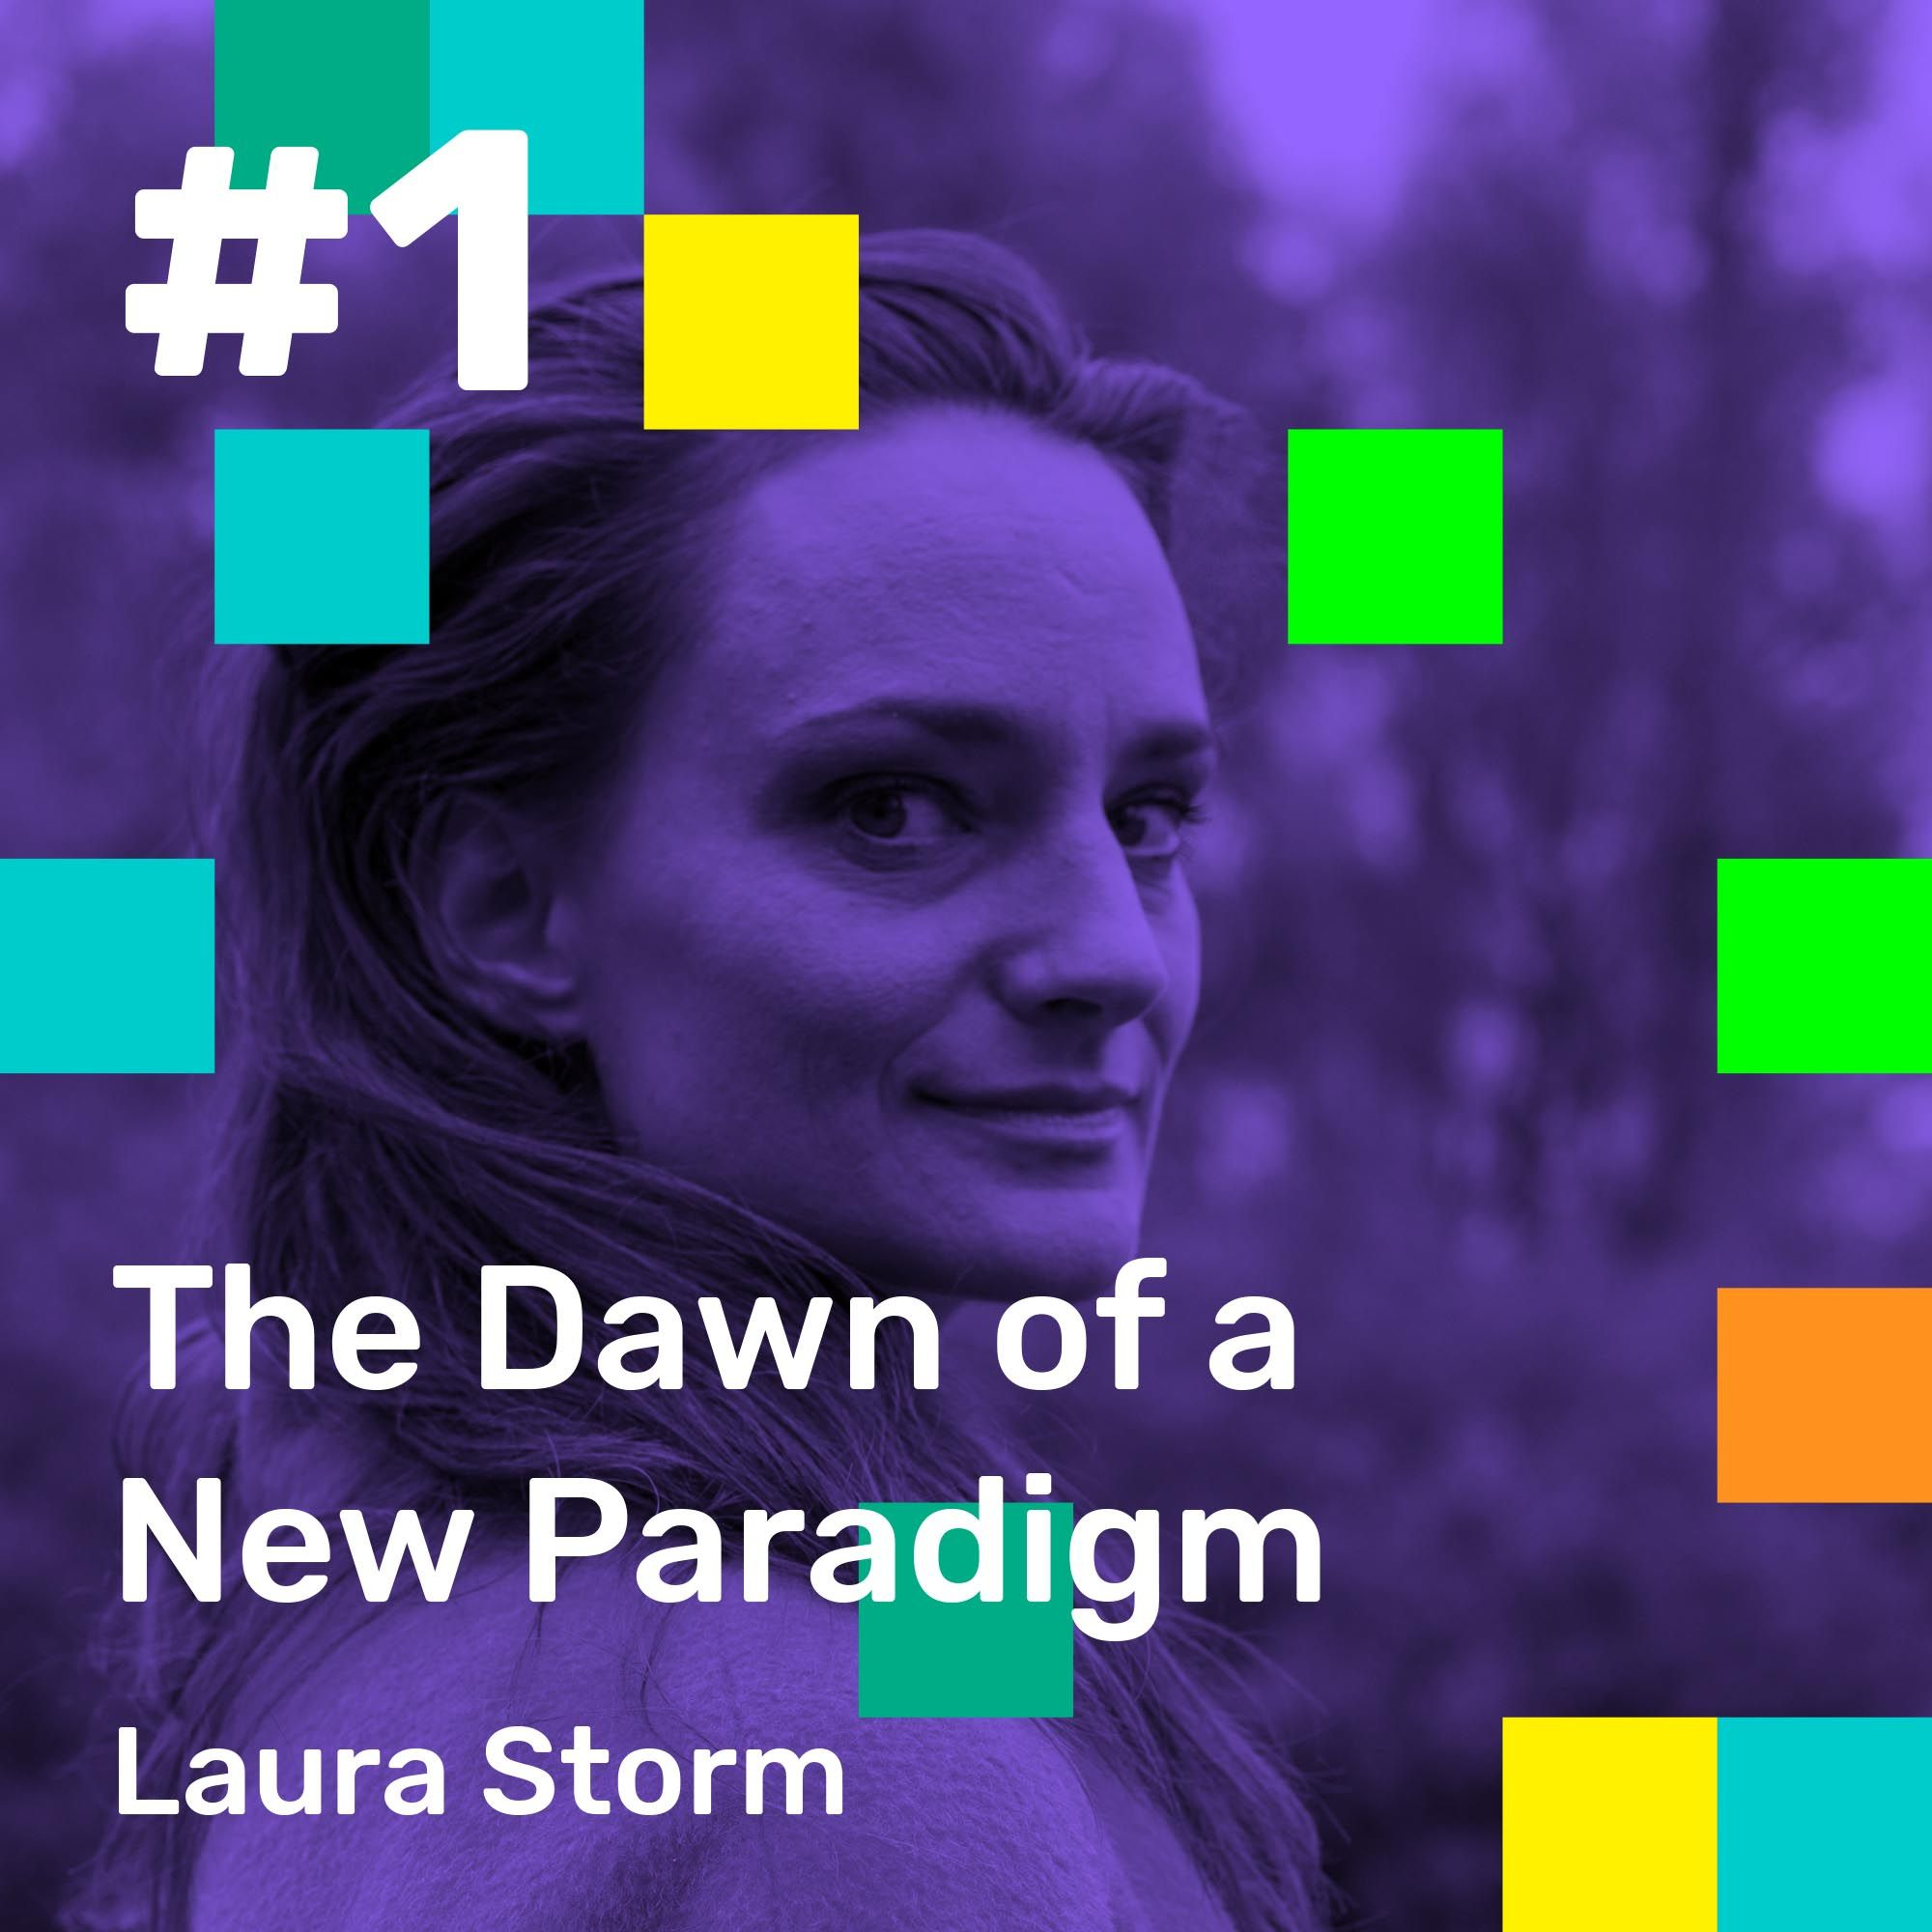 001: The Dawn of a New Paradigm, with Laura Storm